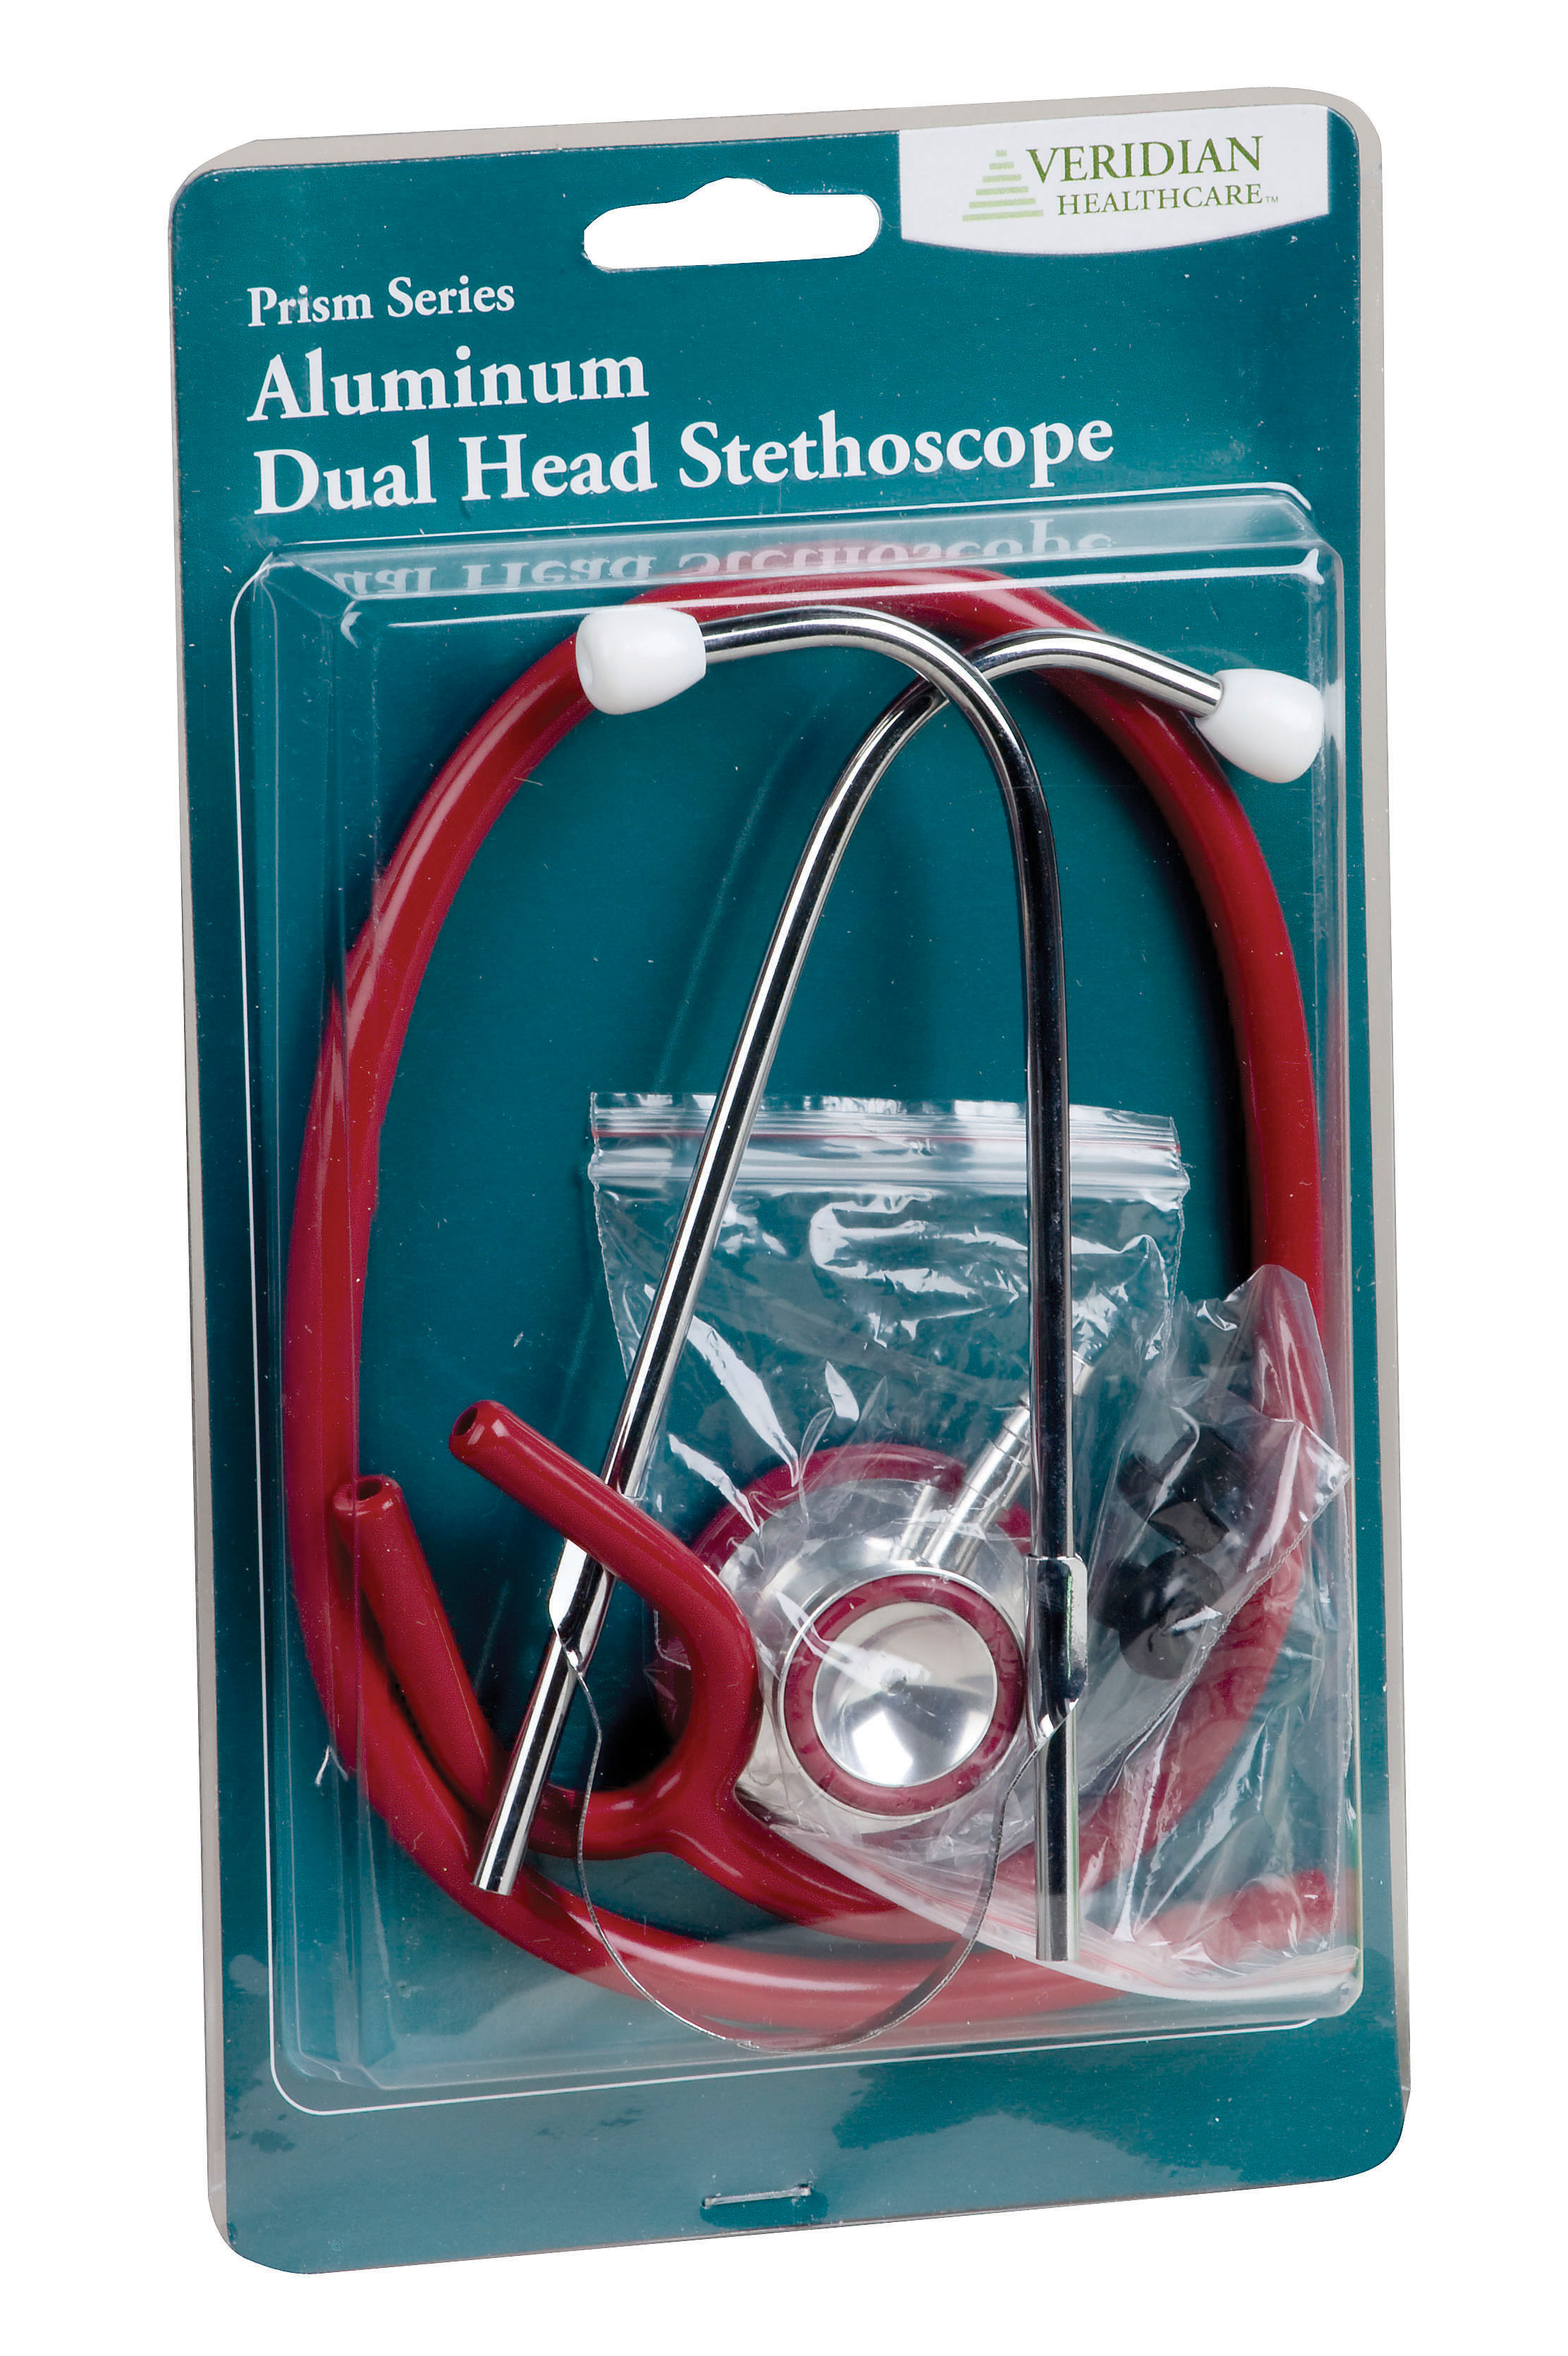 prism-series-aluminum-dual-head-stethoscope-burgundy-slider-pack-05-12104-veridian-3.jpg